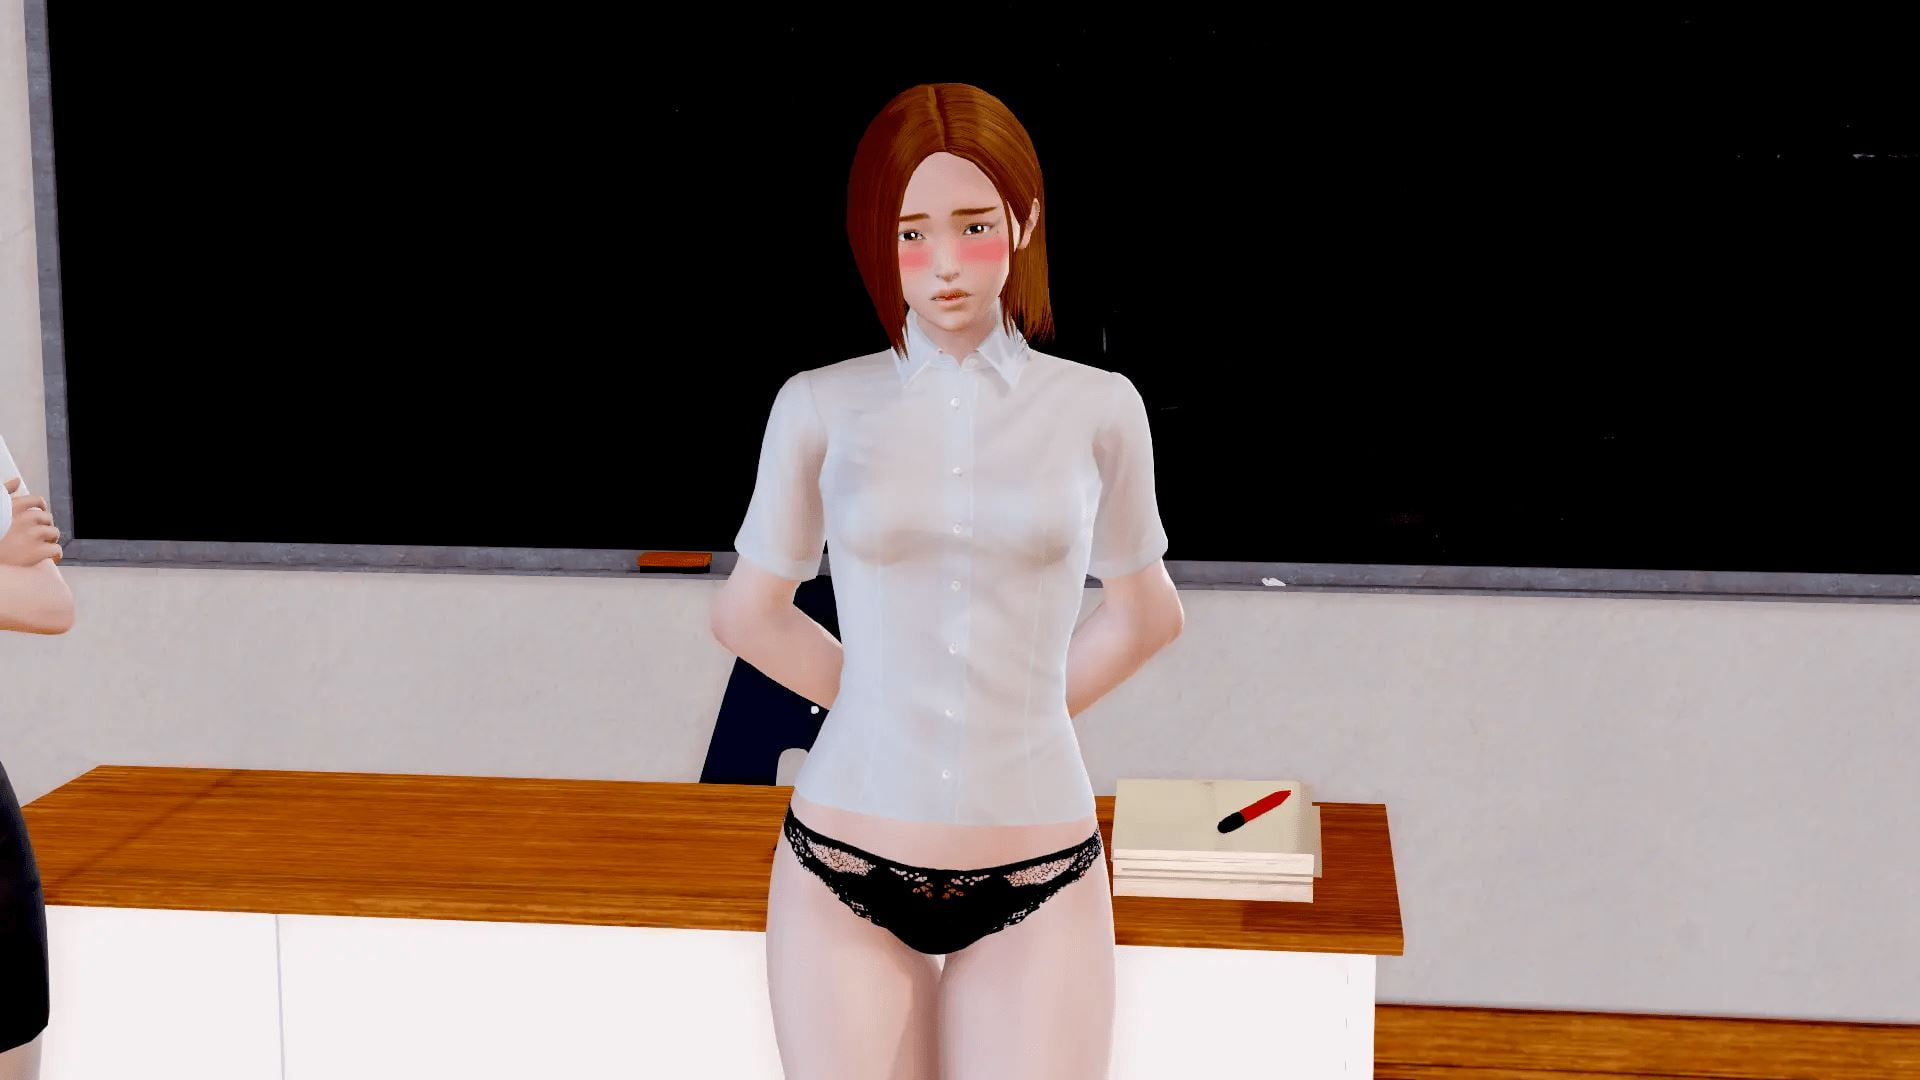 sunville pc porn game download